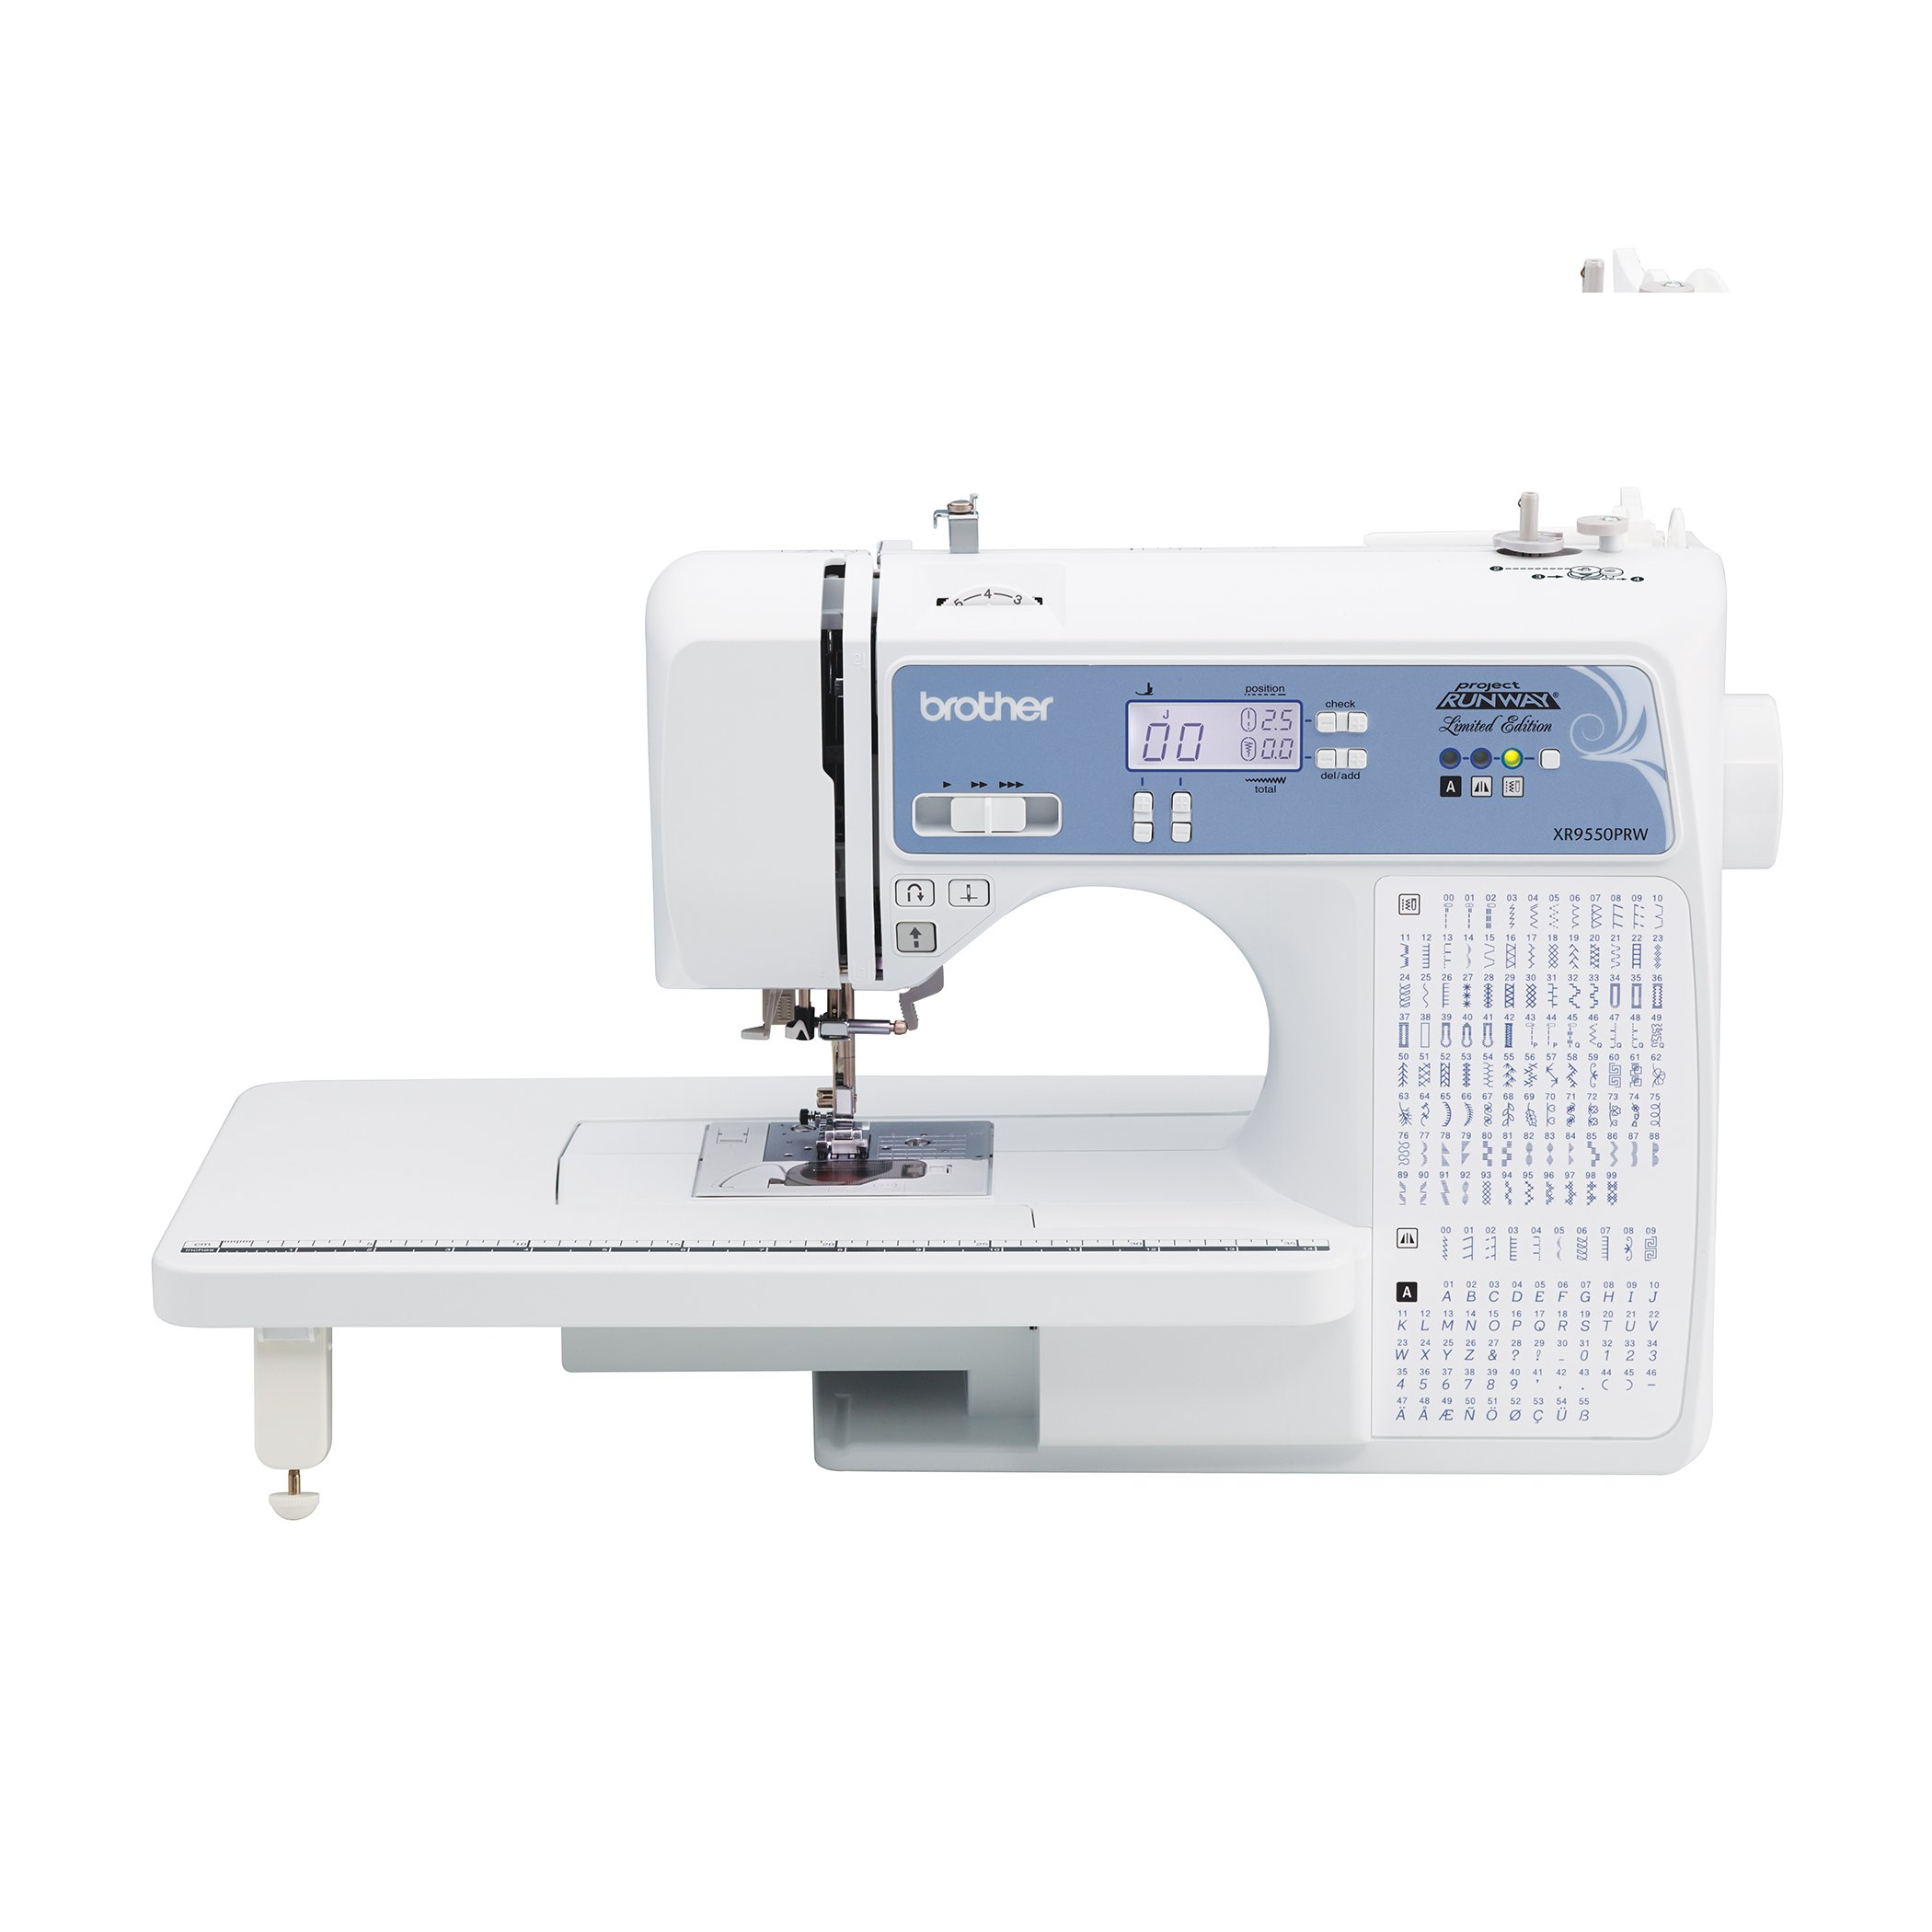 Best Rated In Sewing Machines Helpful Customer Reviews Singer 99 K Machine Threading Diagram Brother Computerized Xr9550prw Project Runway Limited Edition 110 Built